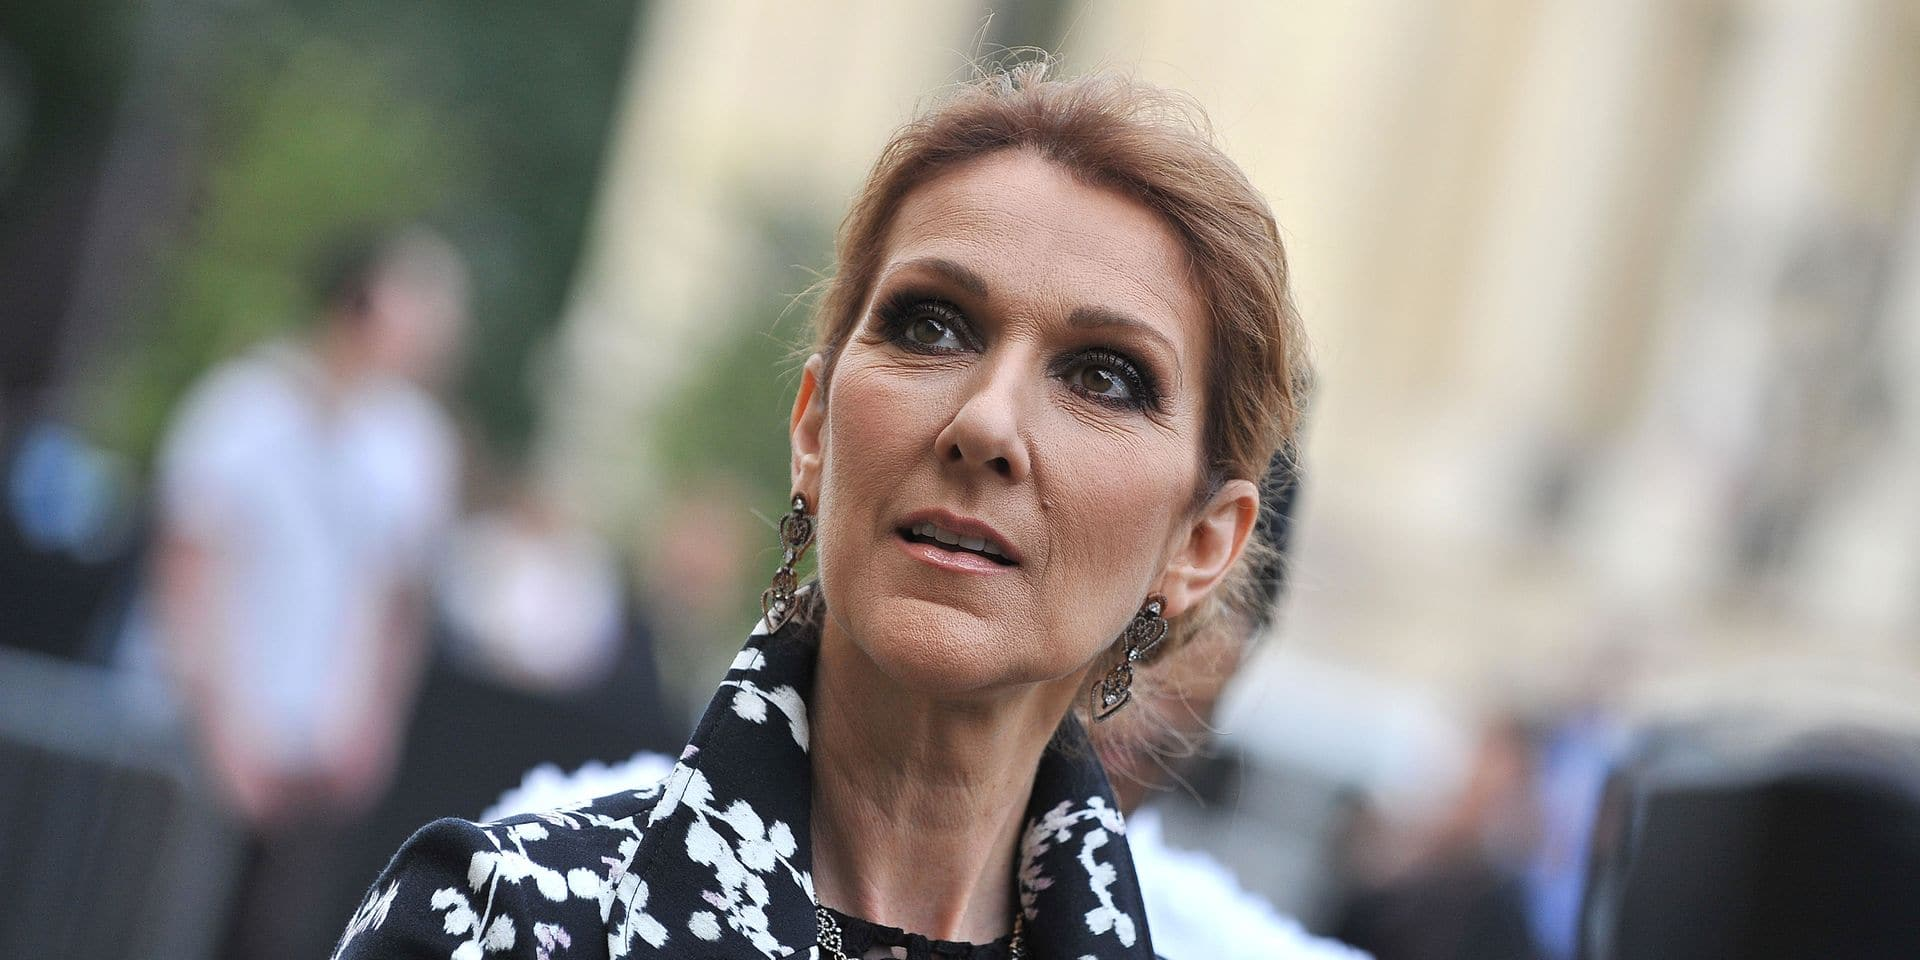 """Tu m'as donné la vie, tu as écrit mon destin"" : Céline Dion adresse un message touchant à sa maman"